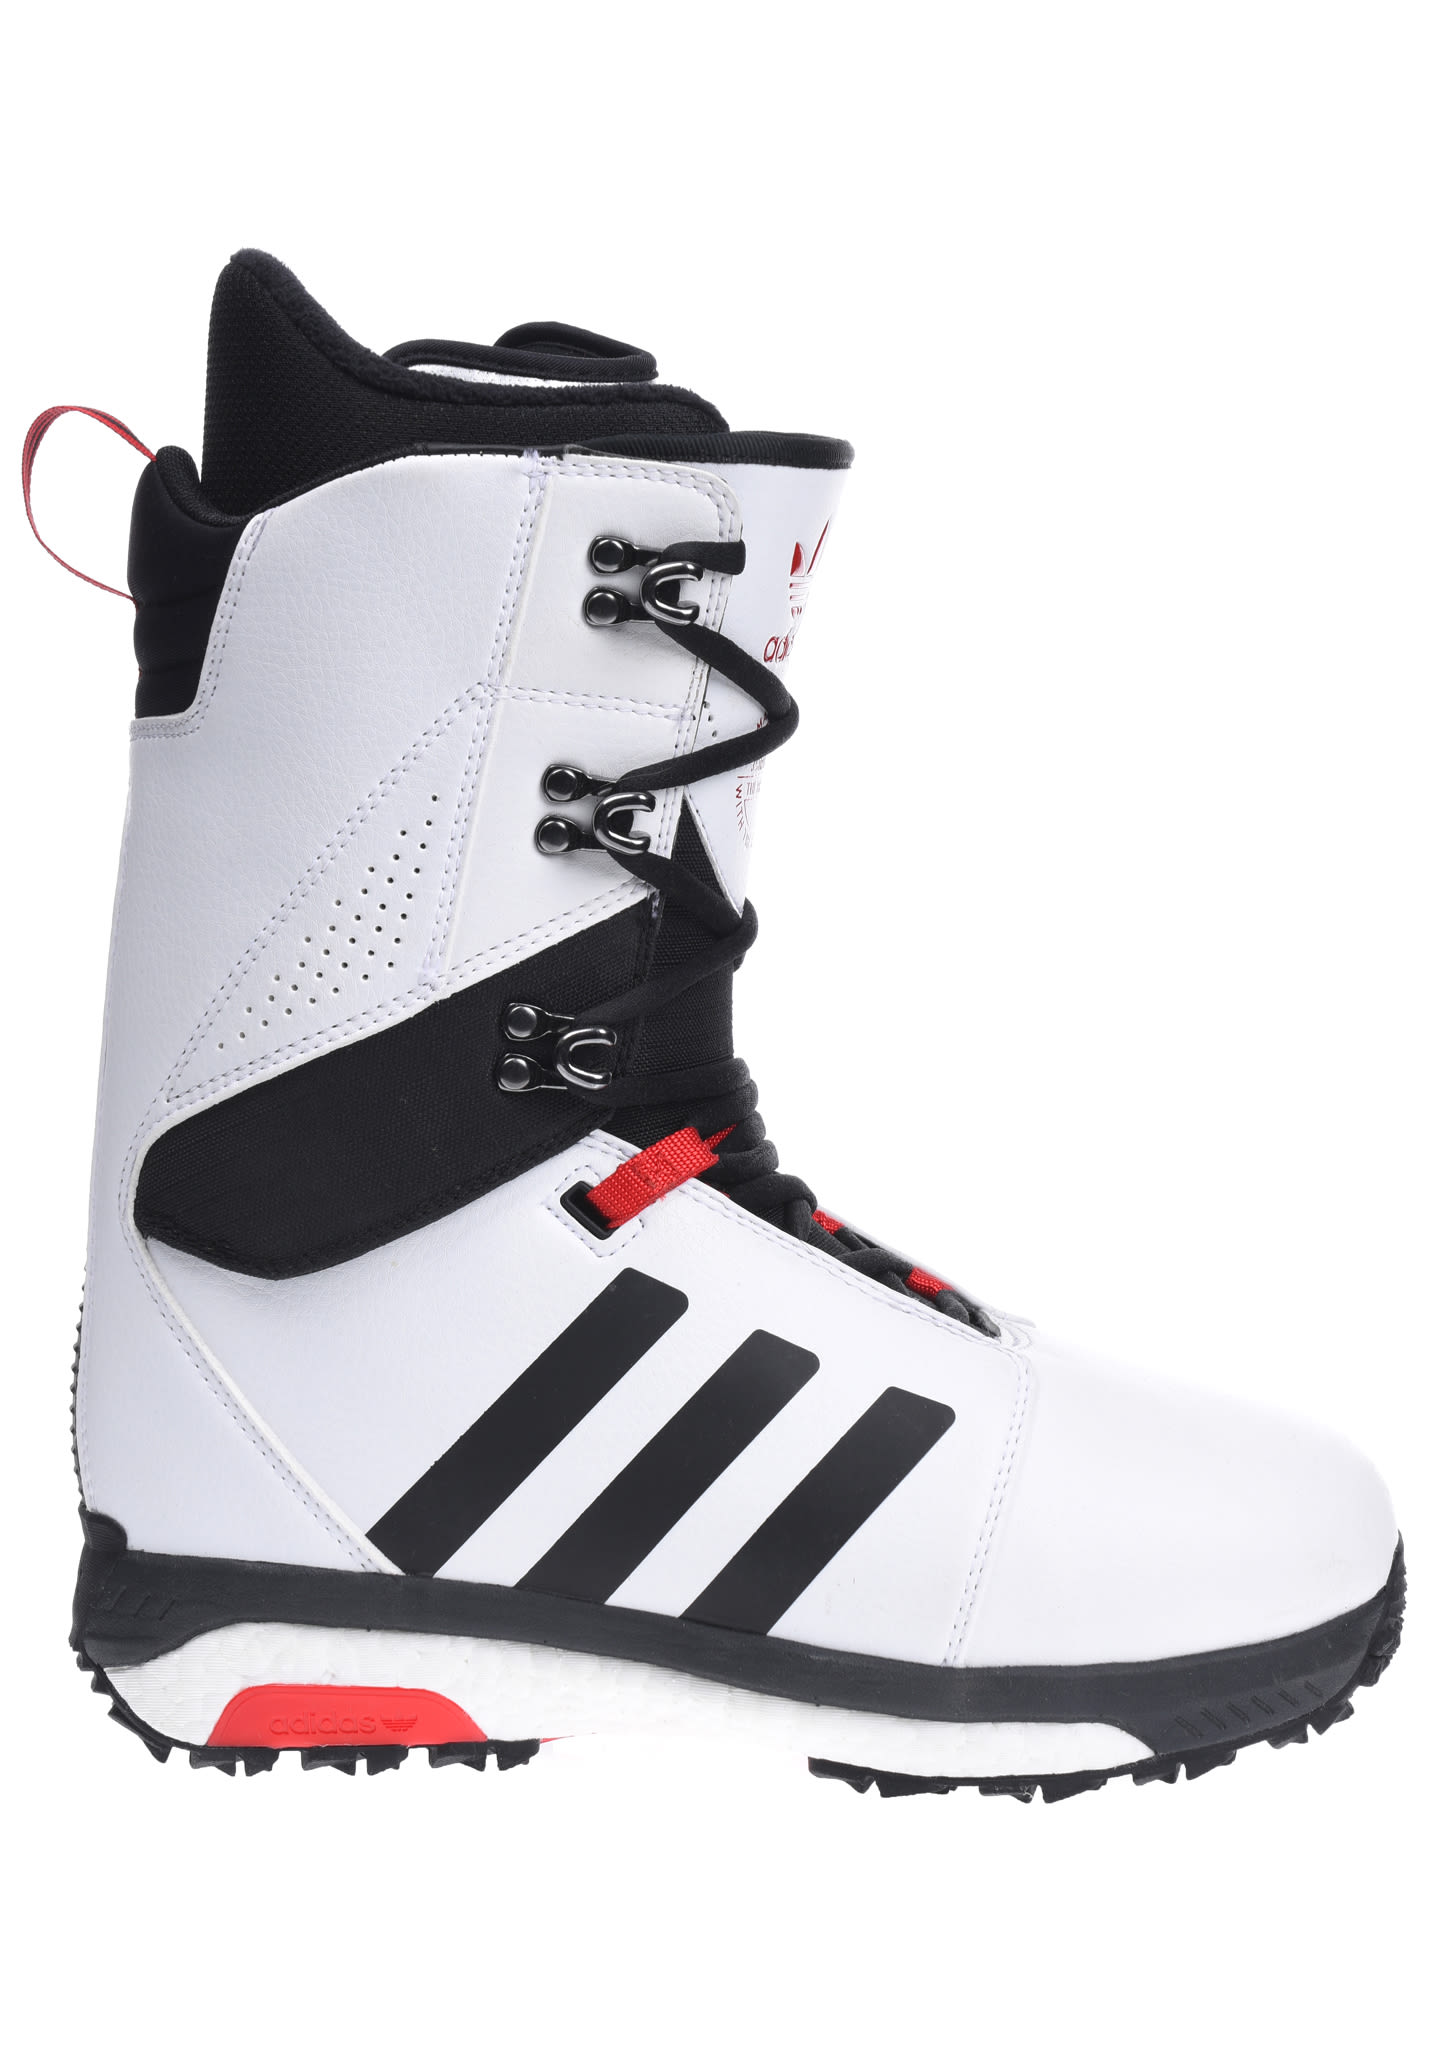 Adidas Snowboarding Homme Snowboard Adv Tactical De Boots Blanc Pour O0nwkP